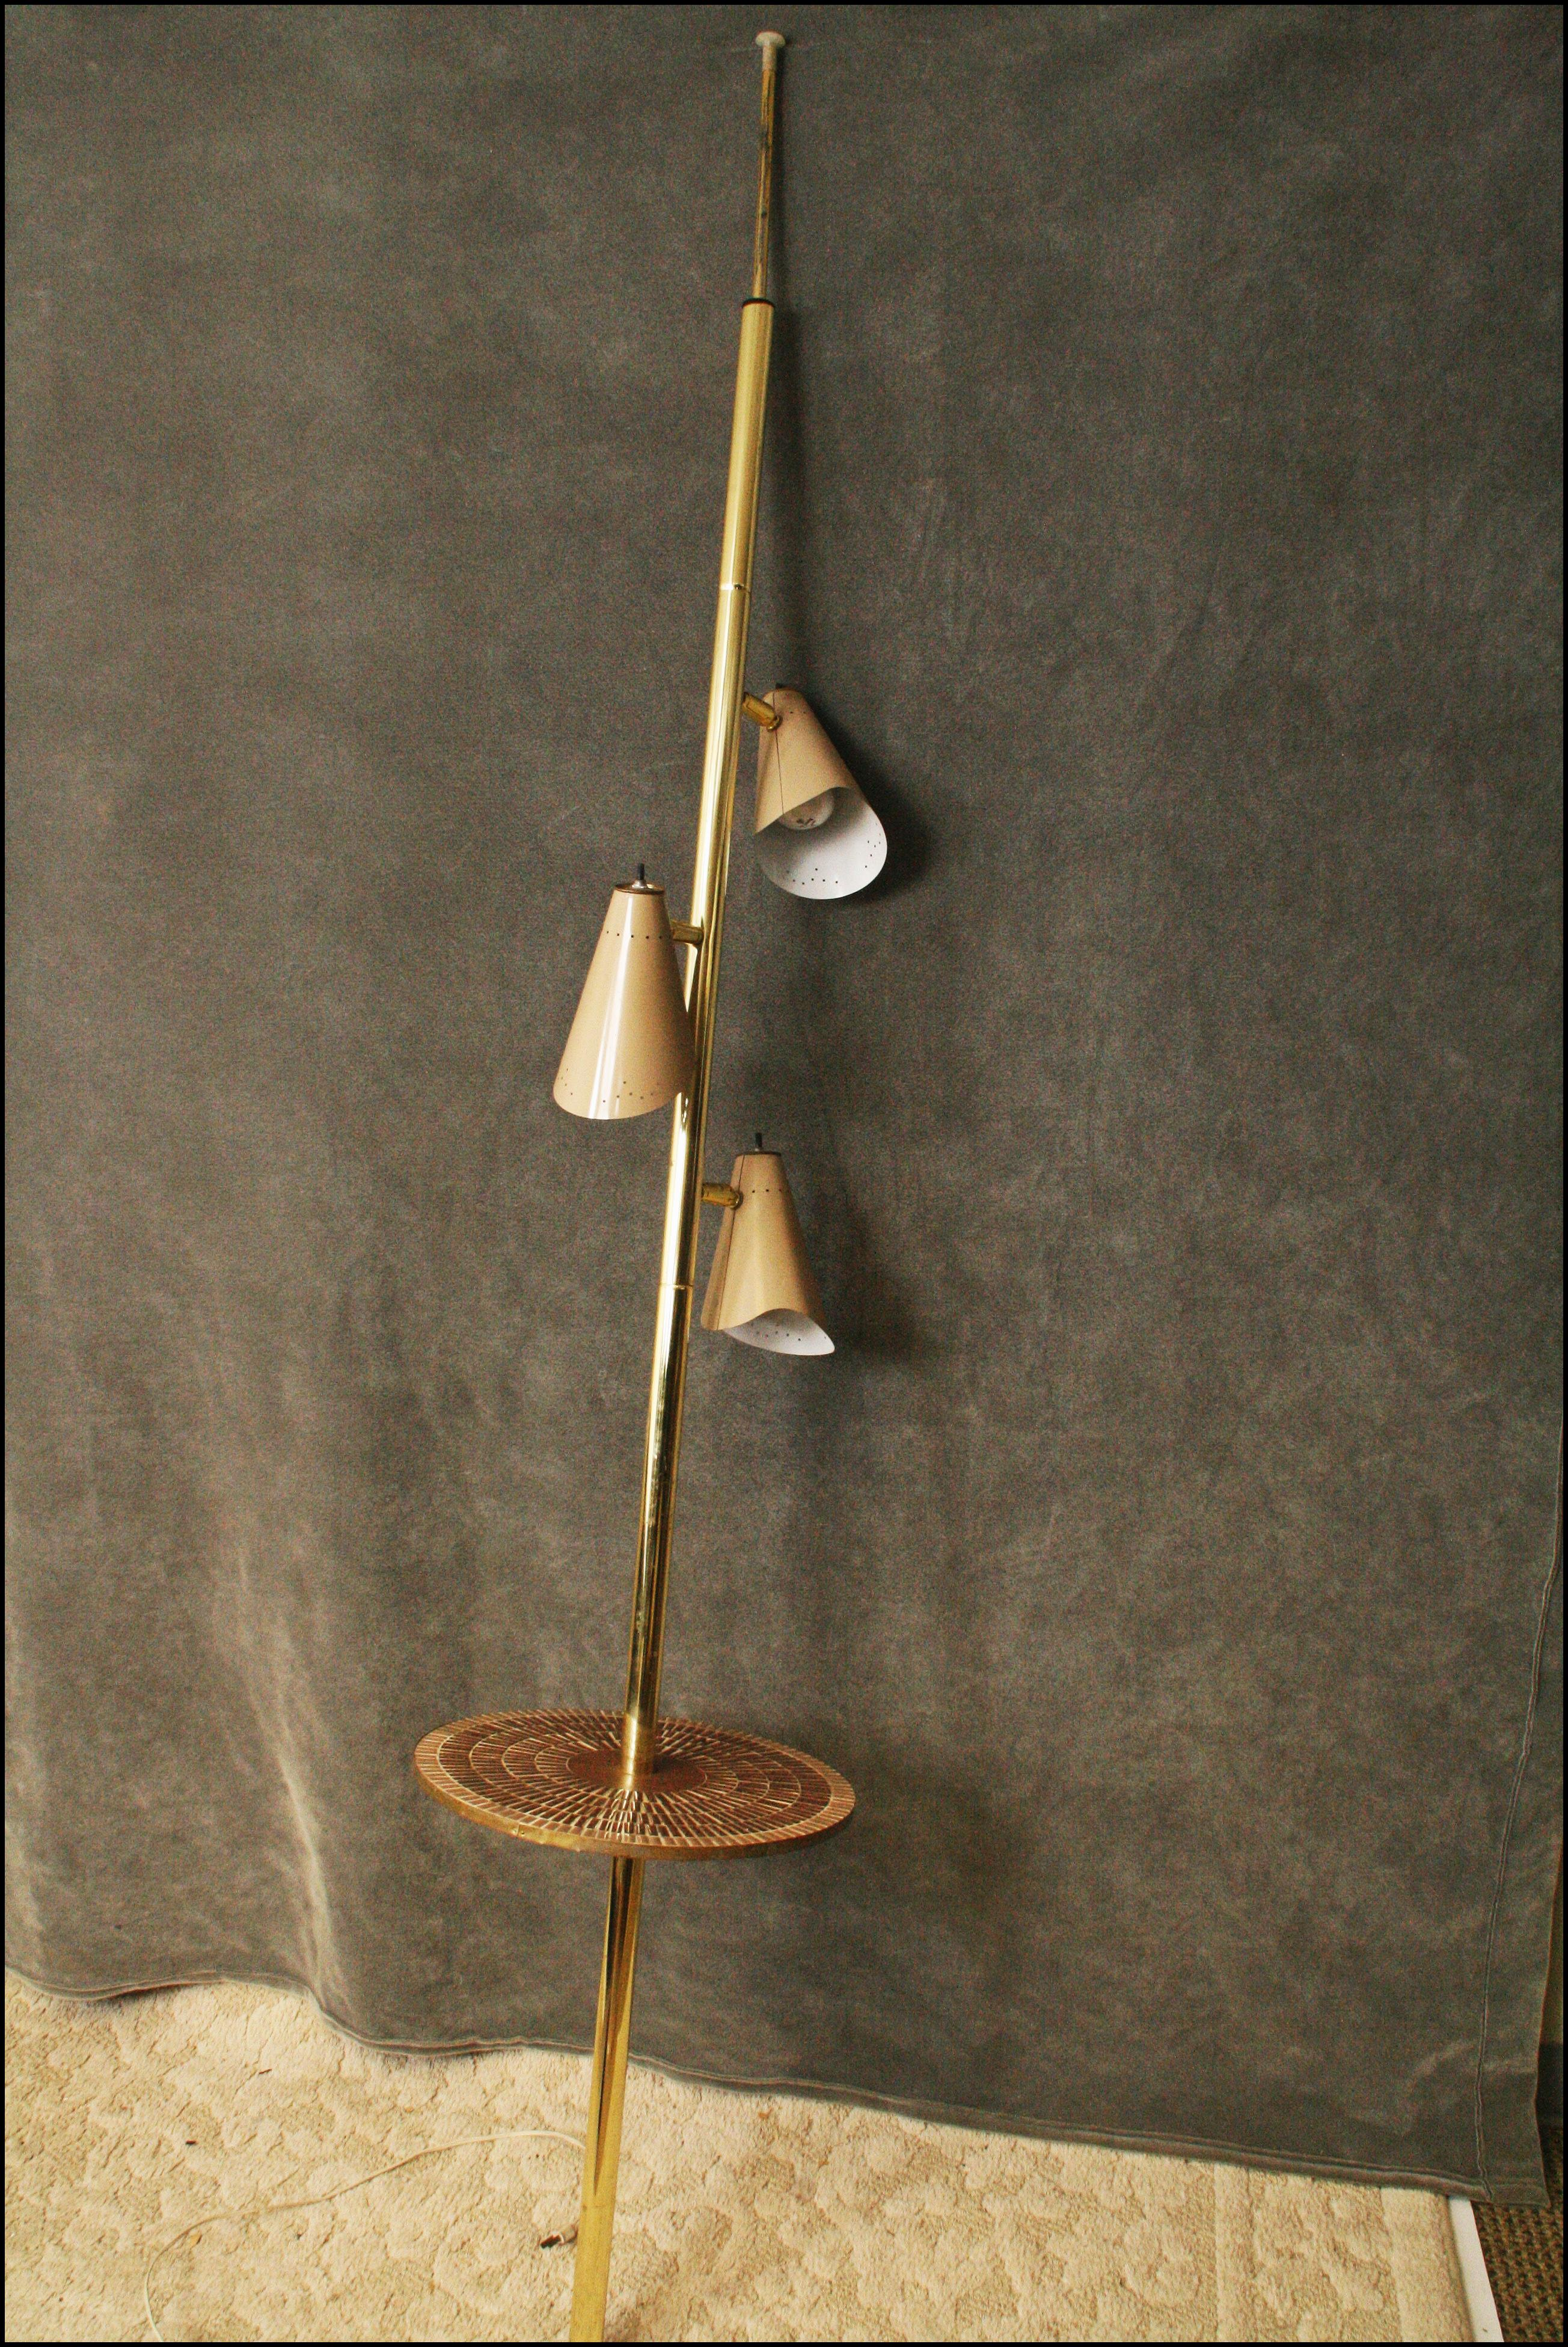 Mid Century Modern Tension Pole Lamp with Tile Top Table